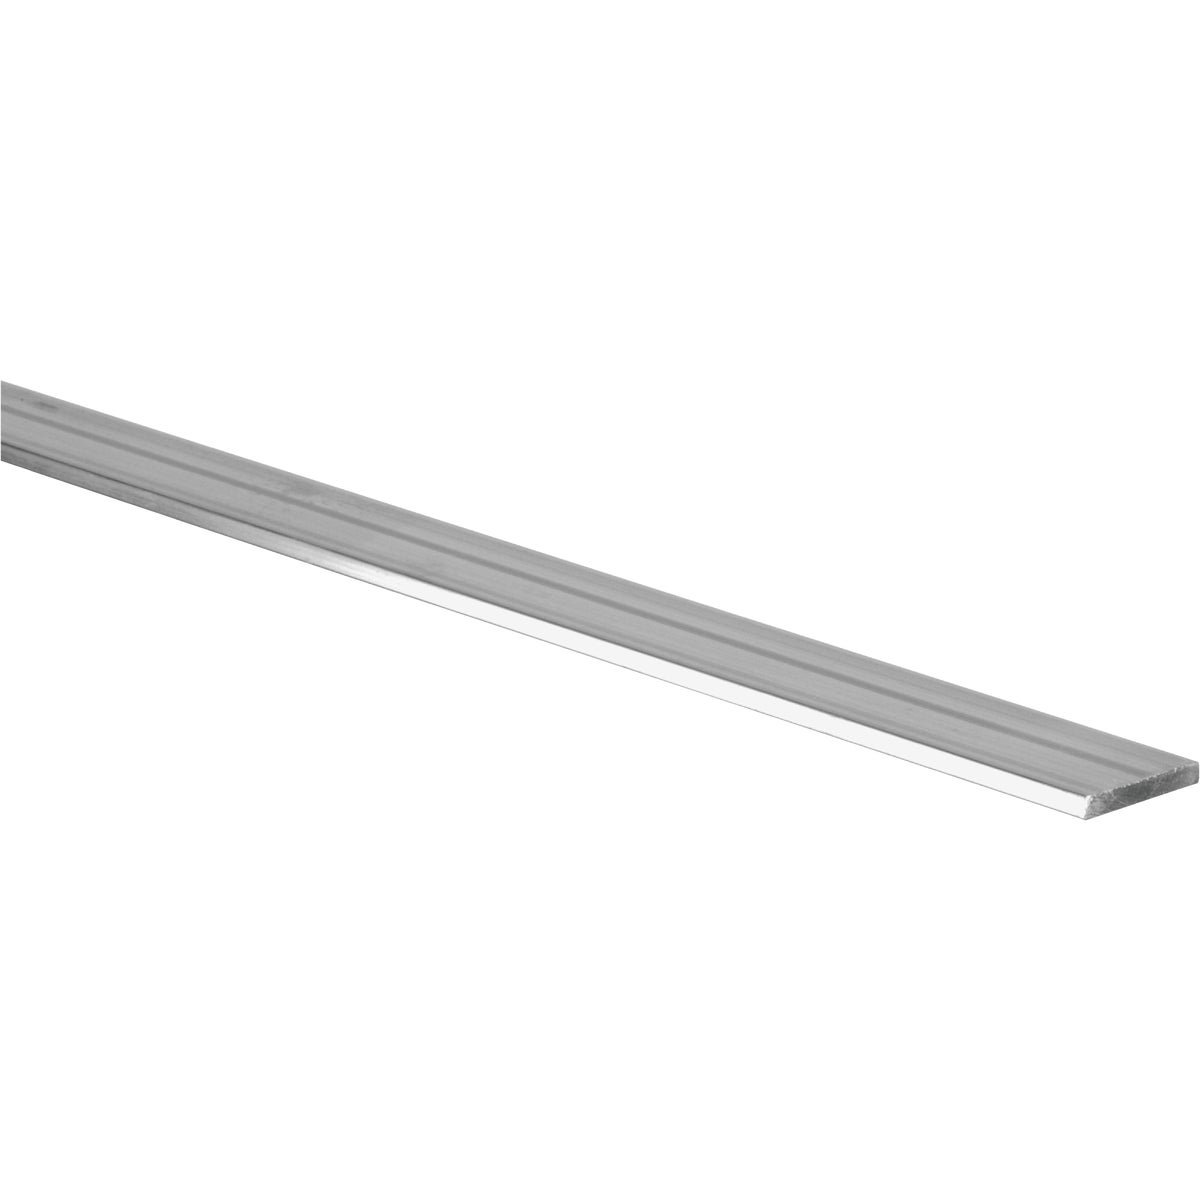 3/4X1/8X36 ALUMINUM BAR - N341917 by National Mfg Co